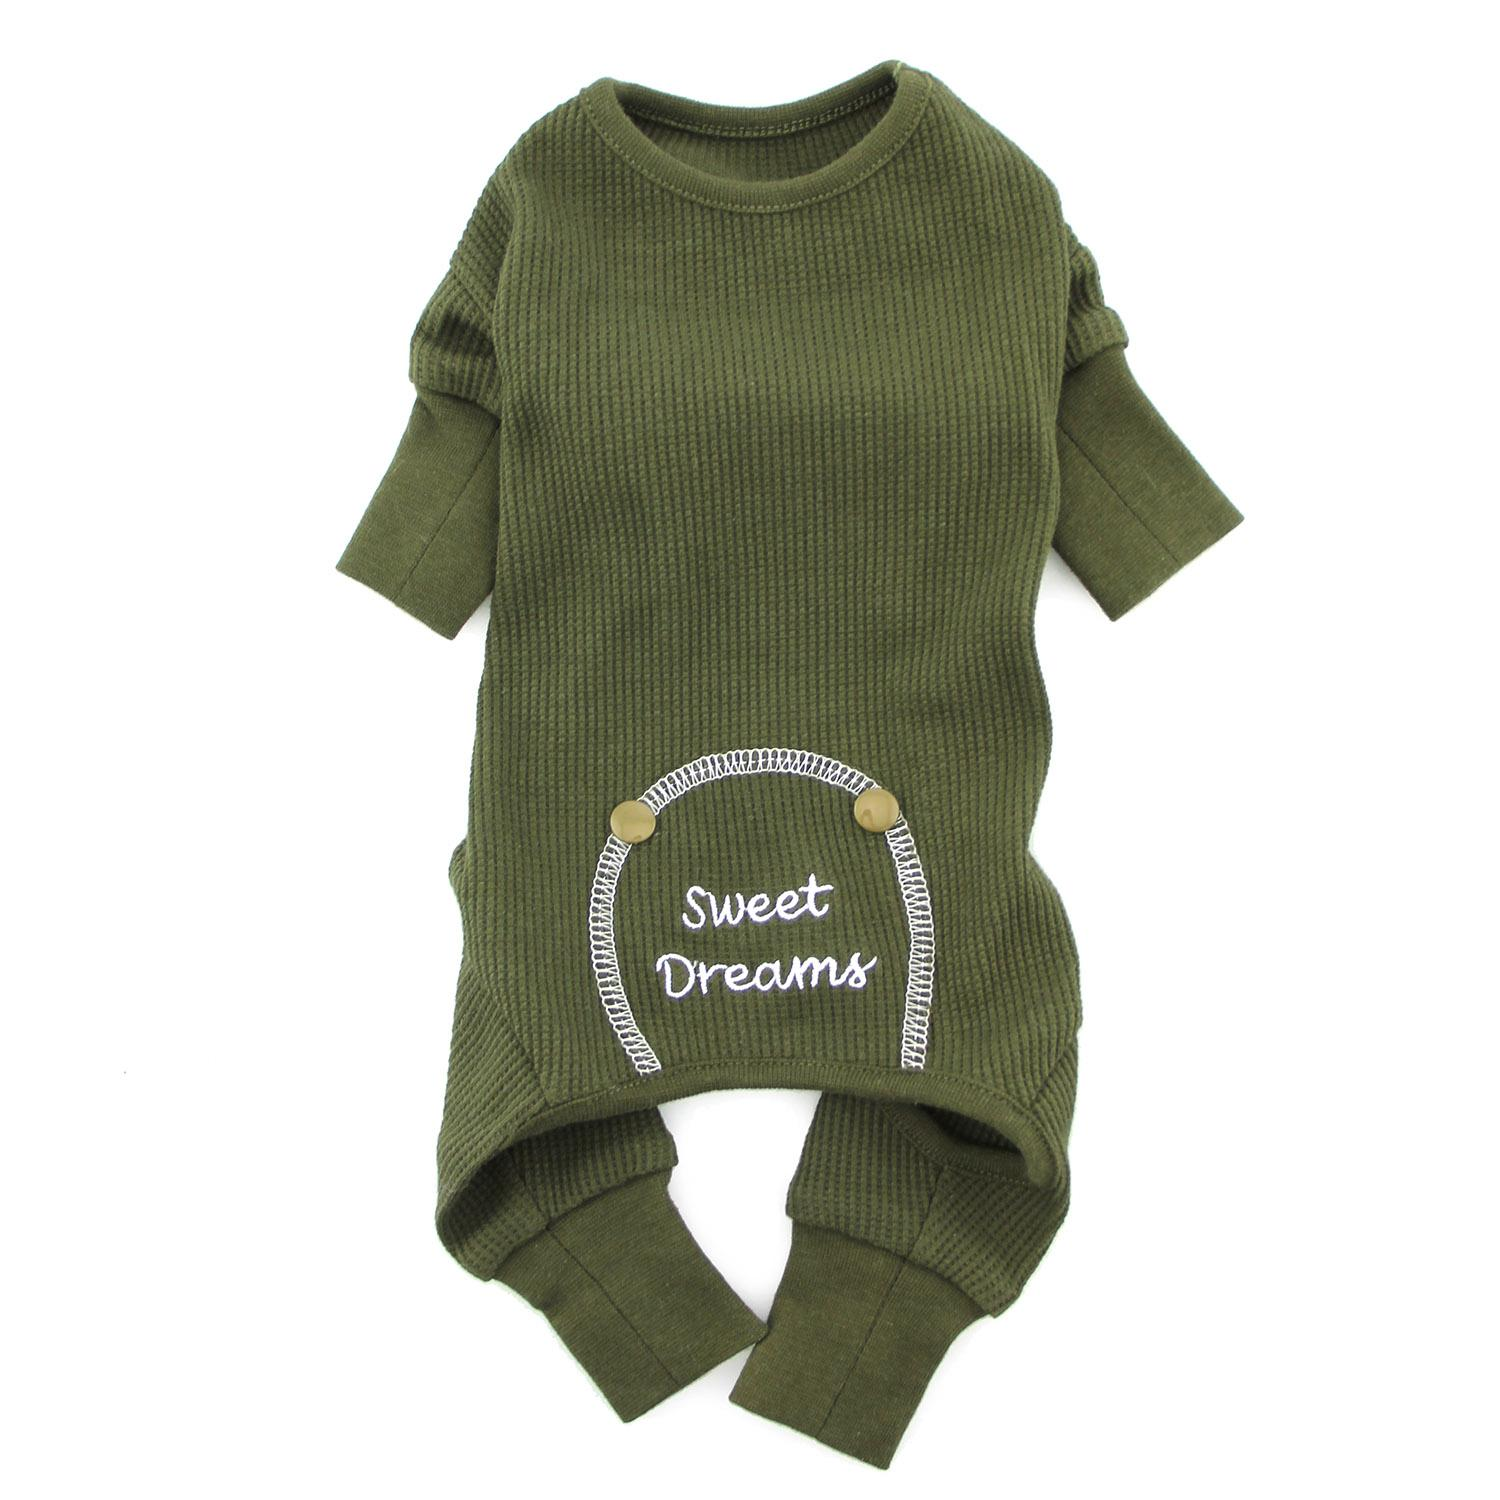 Doggie Design Thermal Pajamas for Dogs, Sweet Dreams, Herb Green, Large